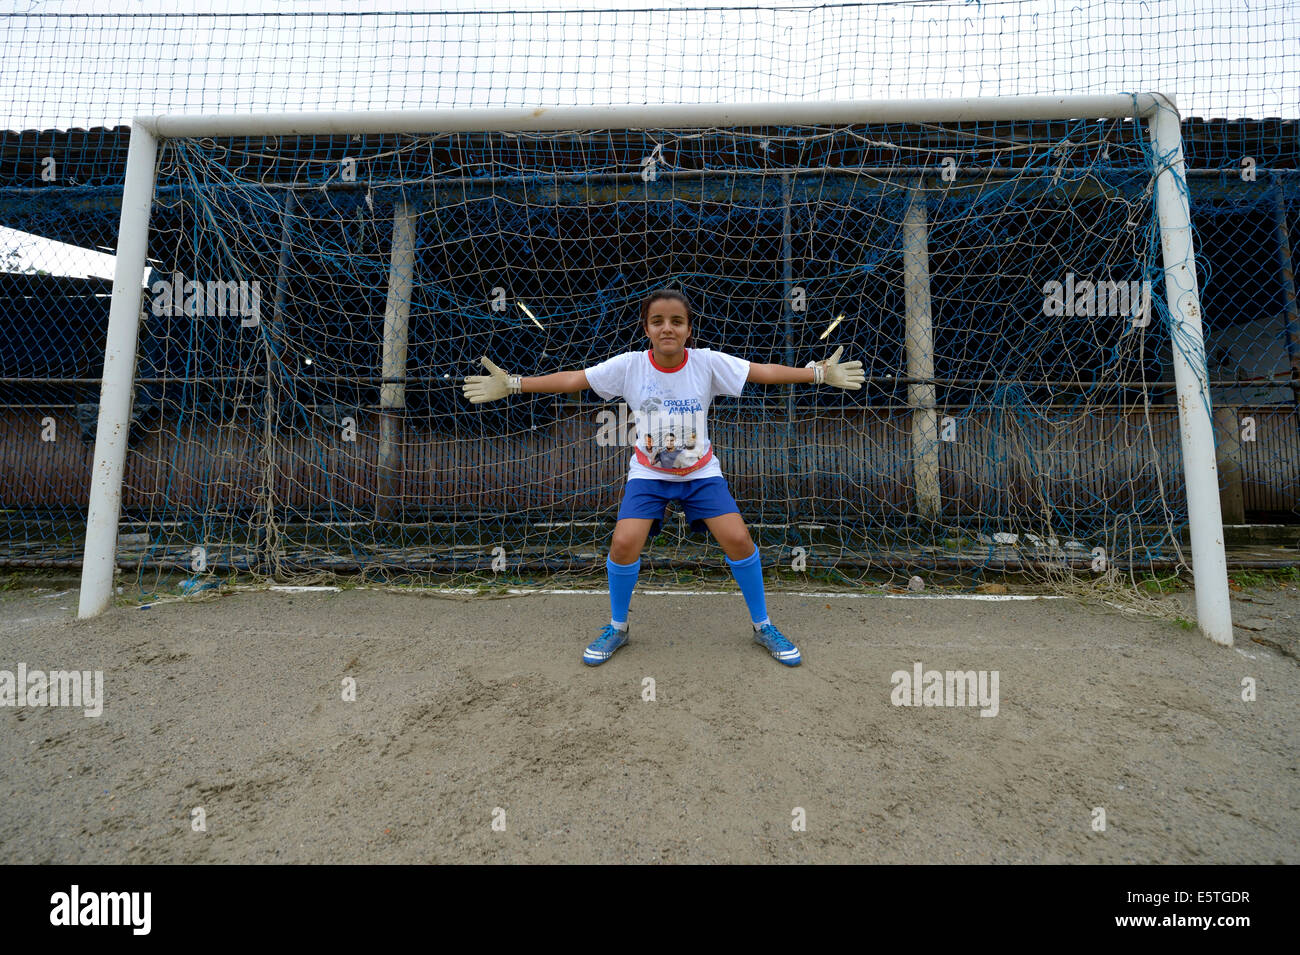 Teenager, 16 years, goalkeeper, standing in the goal with outstretched arms, Craque do Amanha social project, São - Stock Image